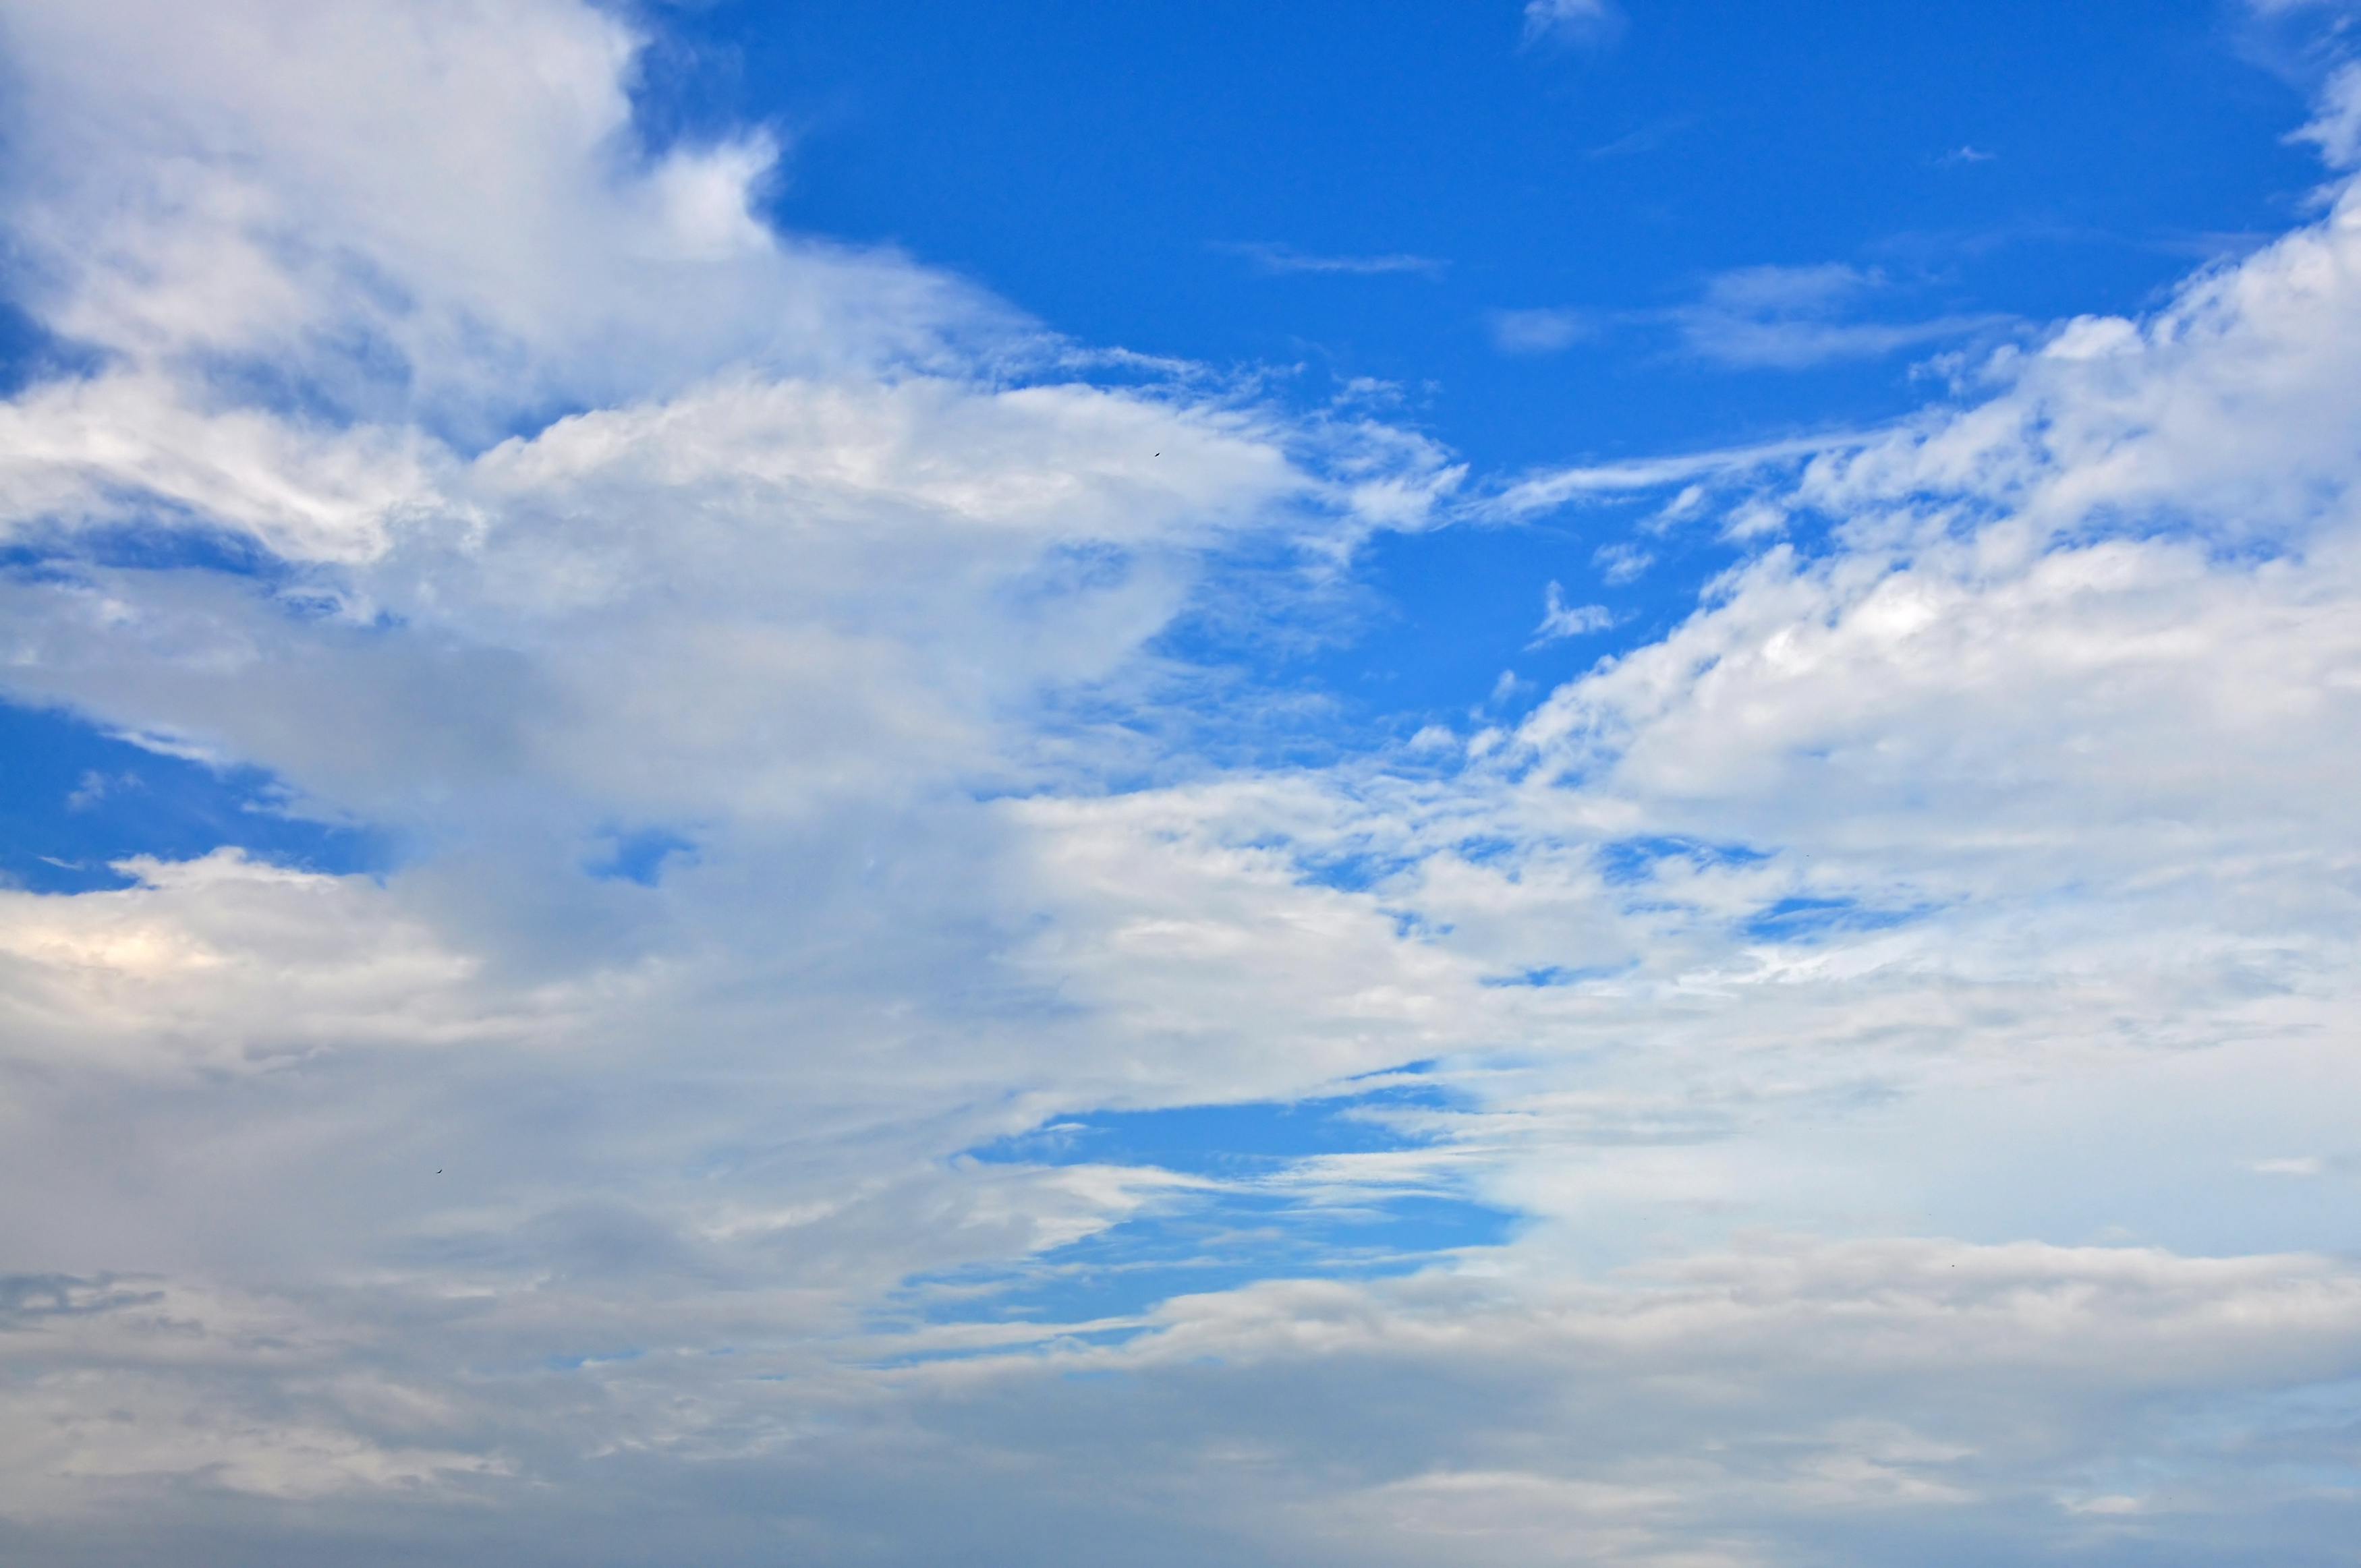 Learn About Stratocumulus Clouds: Low, Puffy Layer ... |Stratocumulus Clouds Description